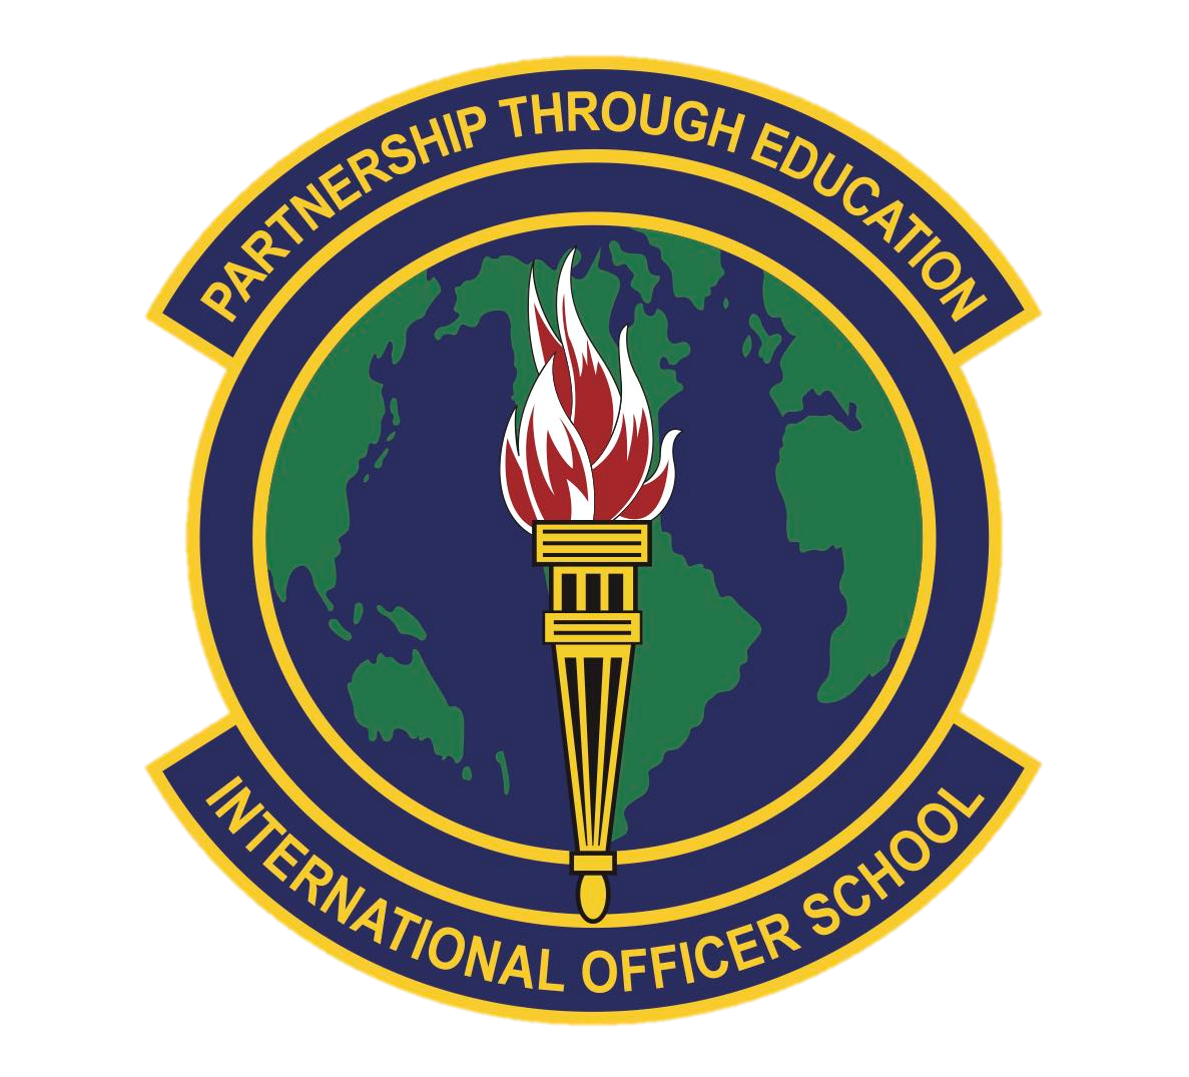 International Officer School Patch